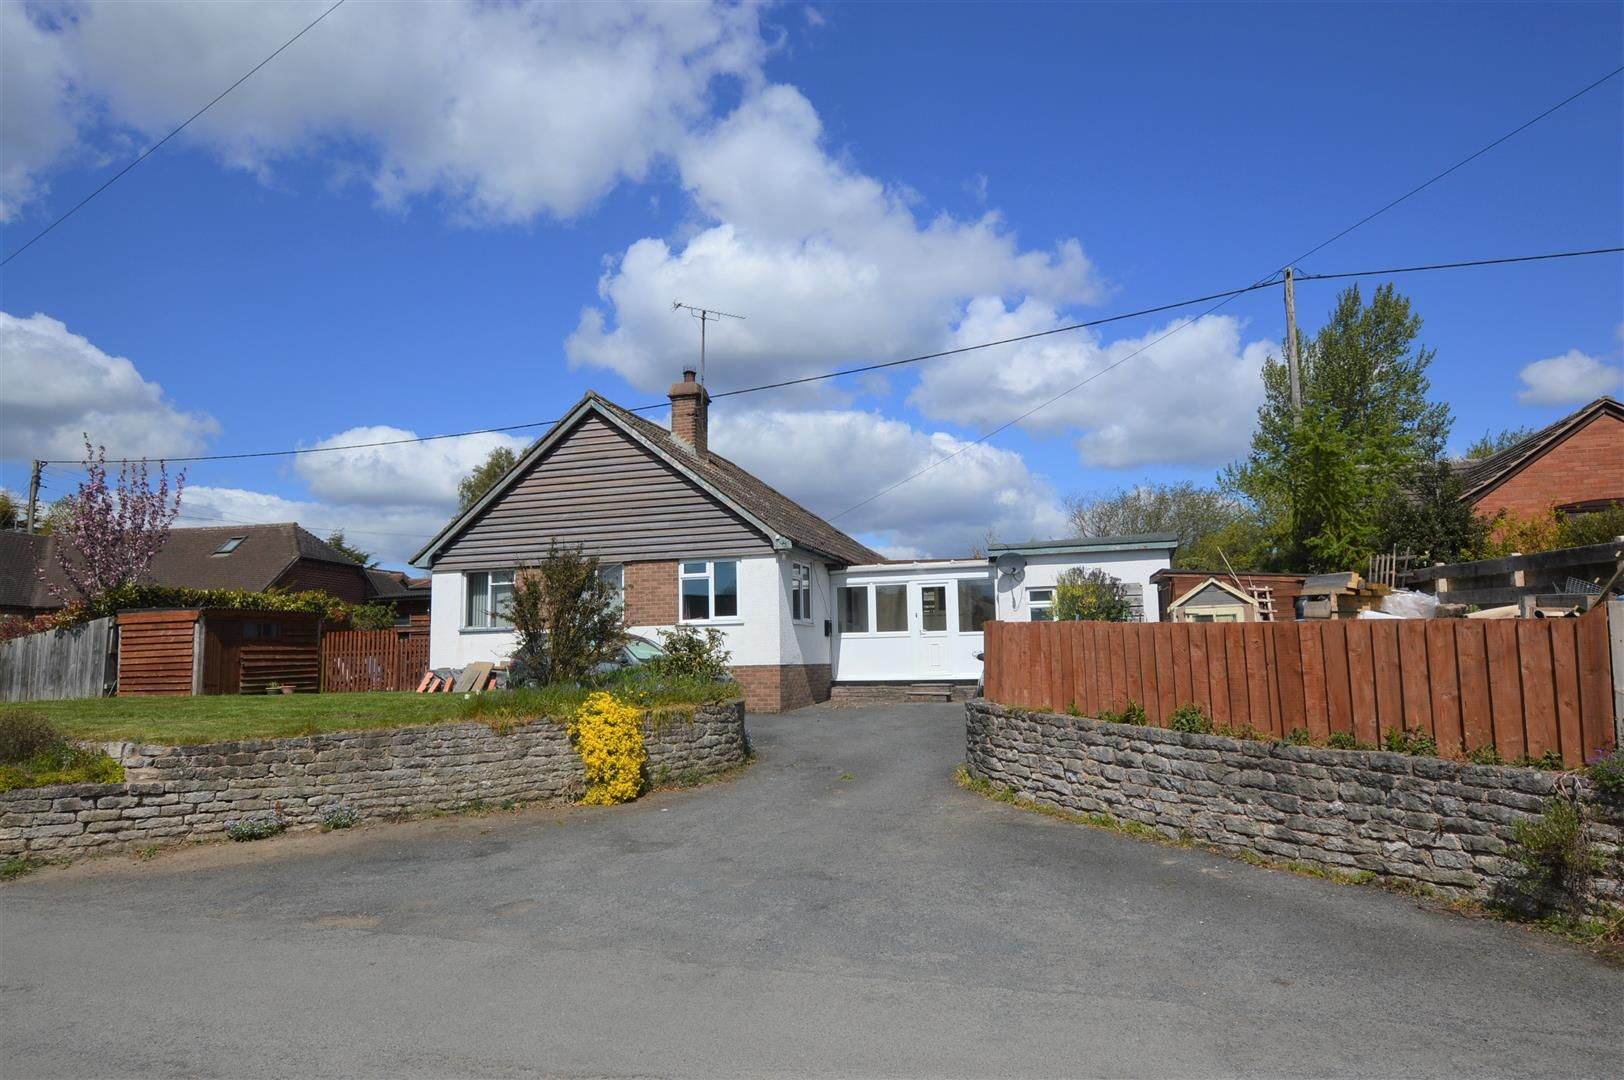 3 bed detached bungalow for sale in Brimfield, SY8